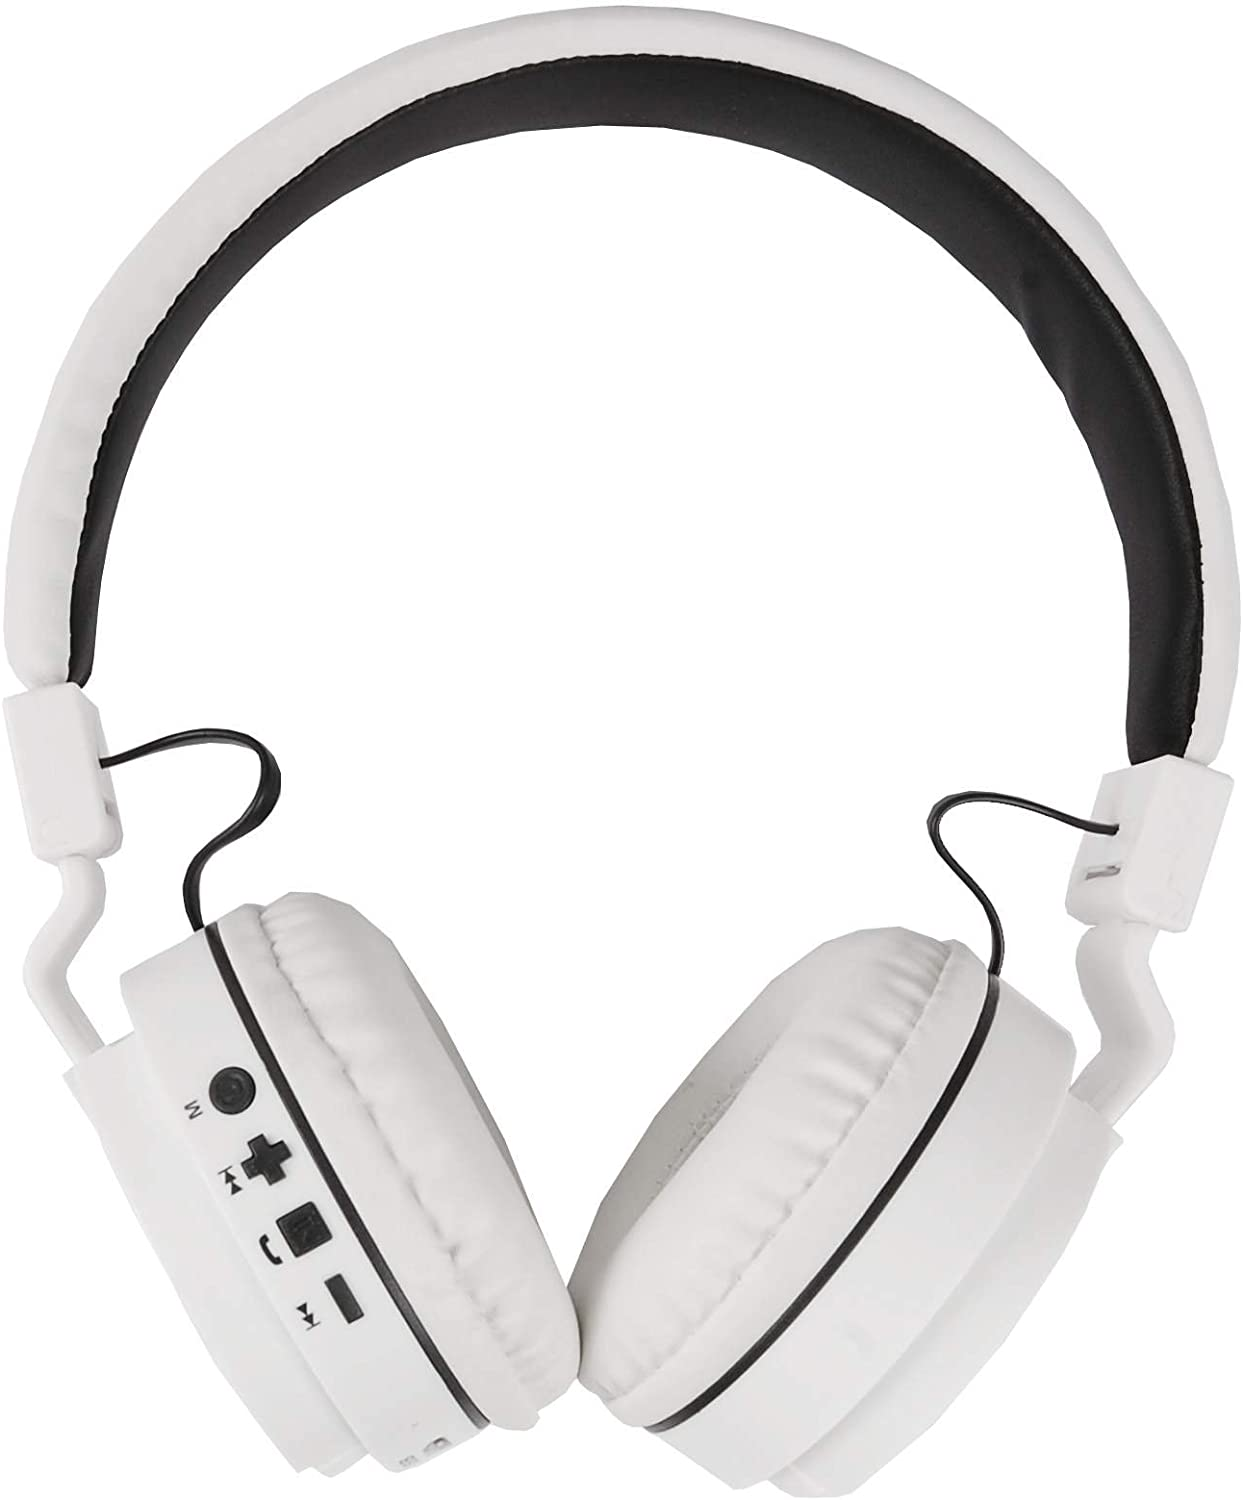 Amazon Com Surya Xifo Wireless Bluetooth Headphones M18 In White Colour Home Audio Theater